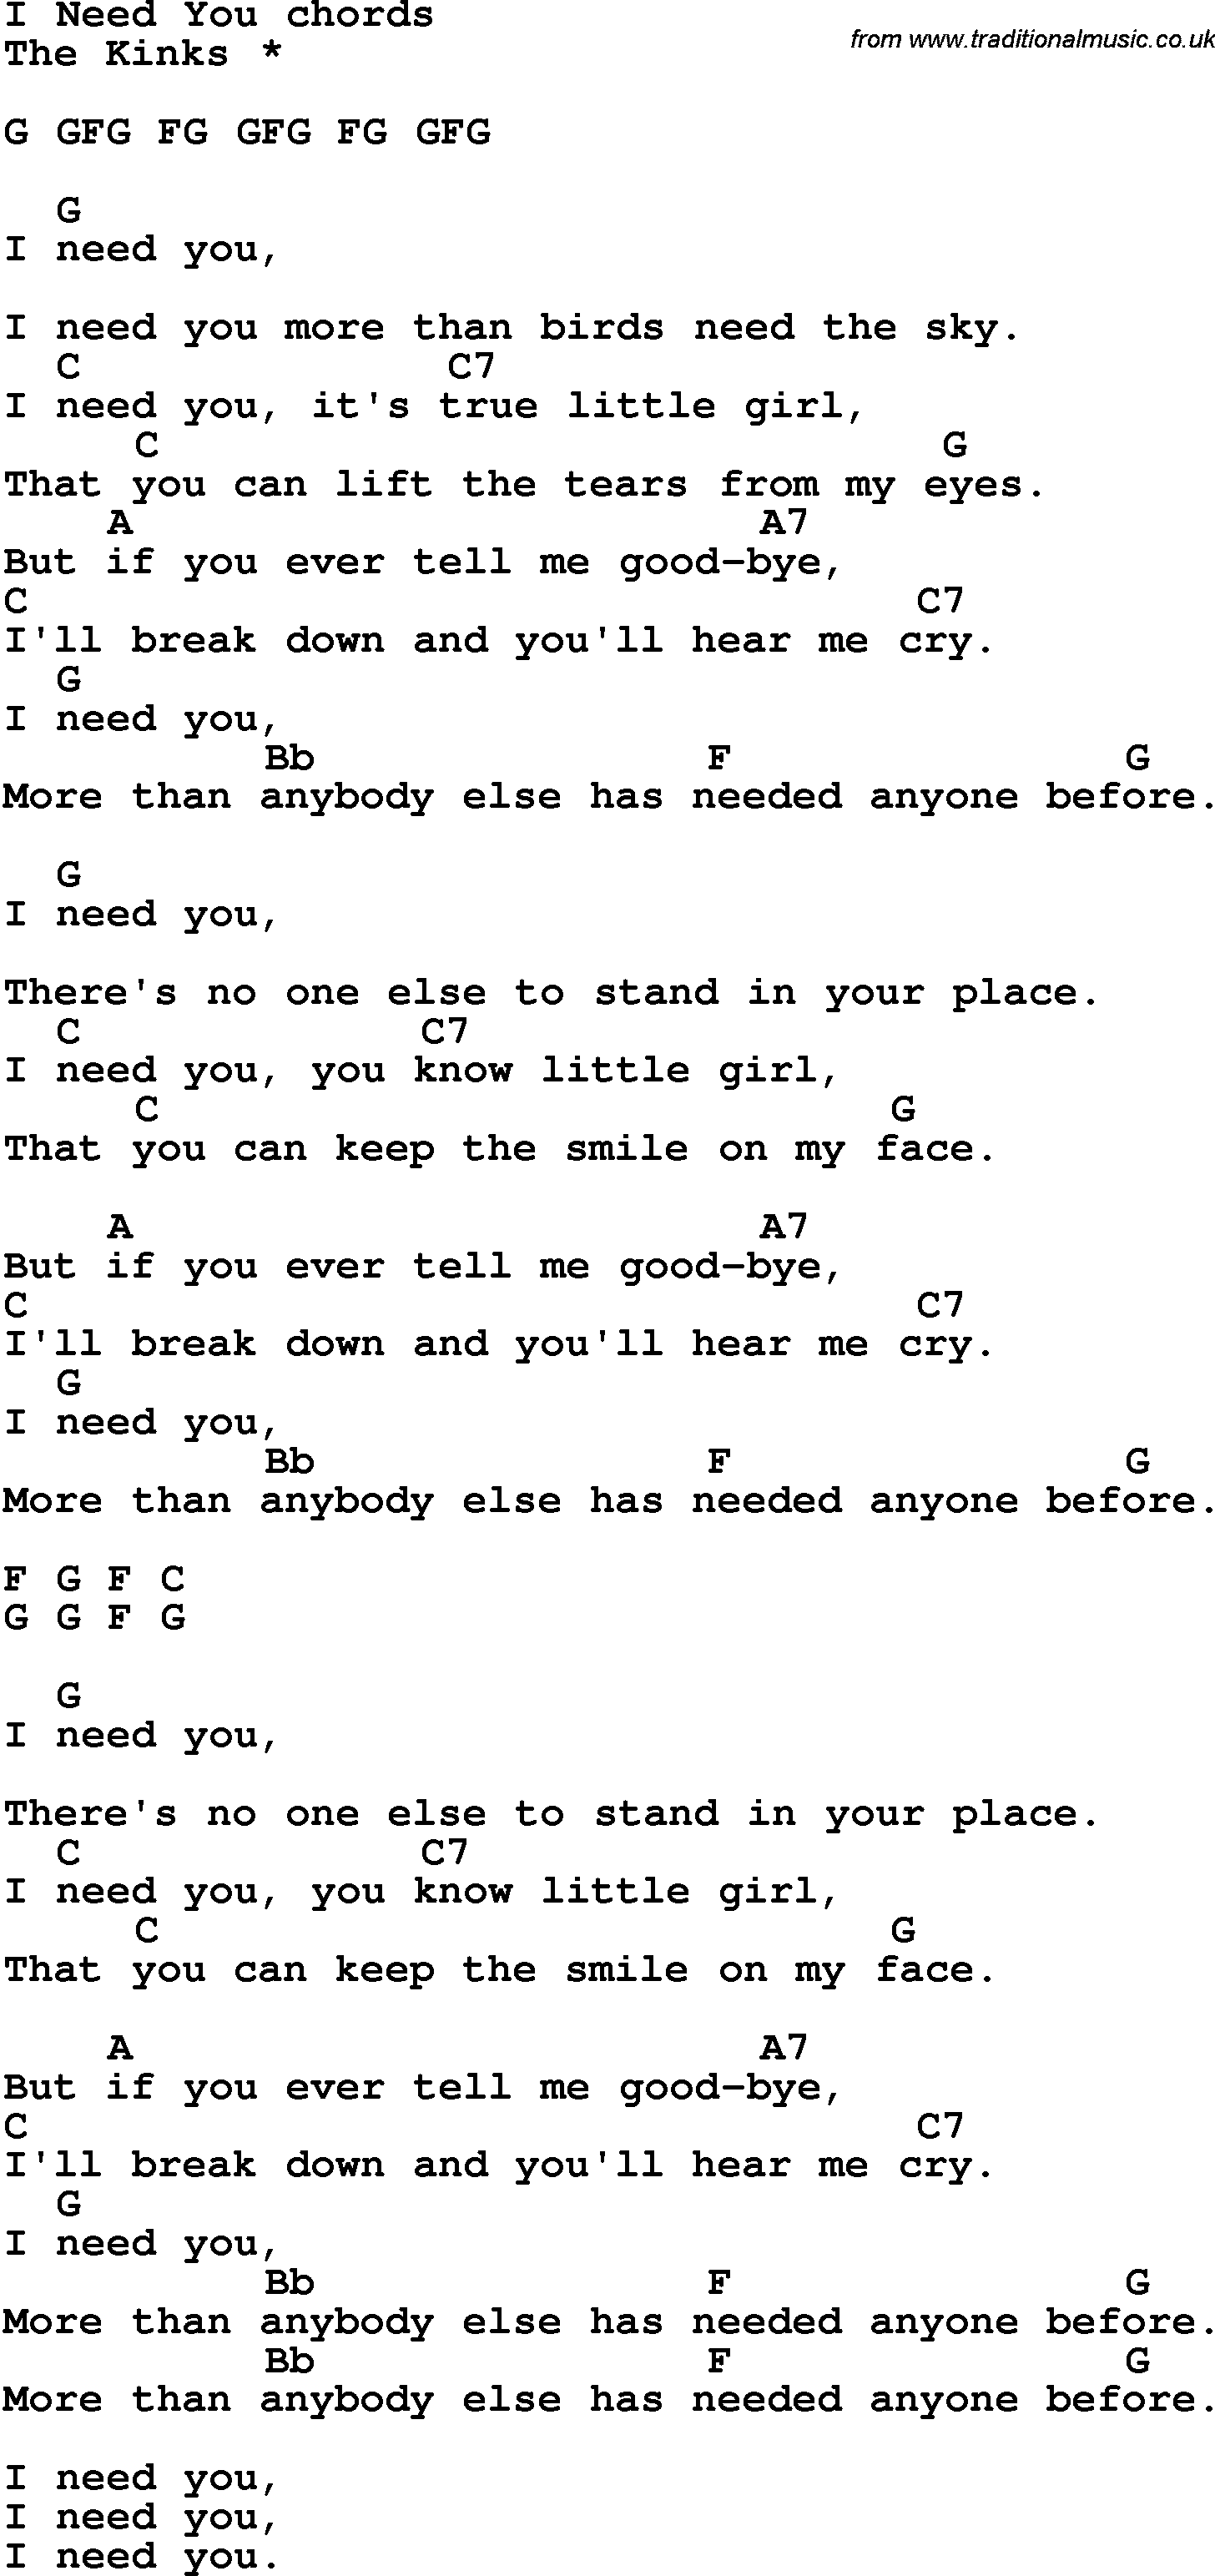 Song Lyrics With Guitar Chords For I Need You The Kinks